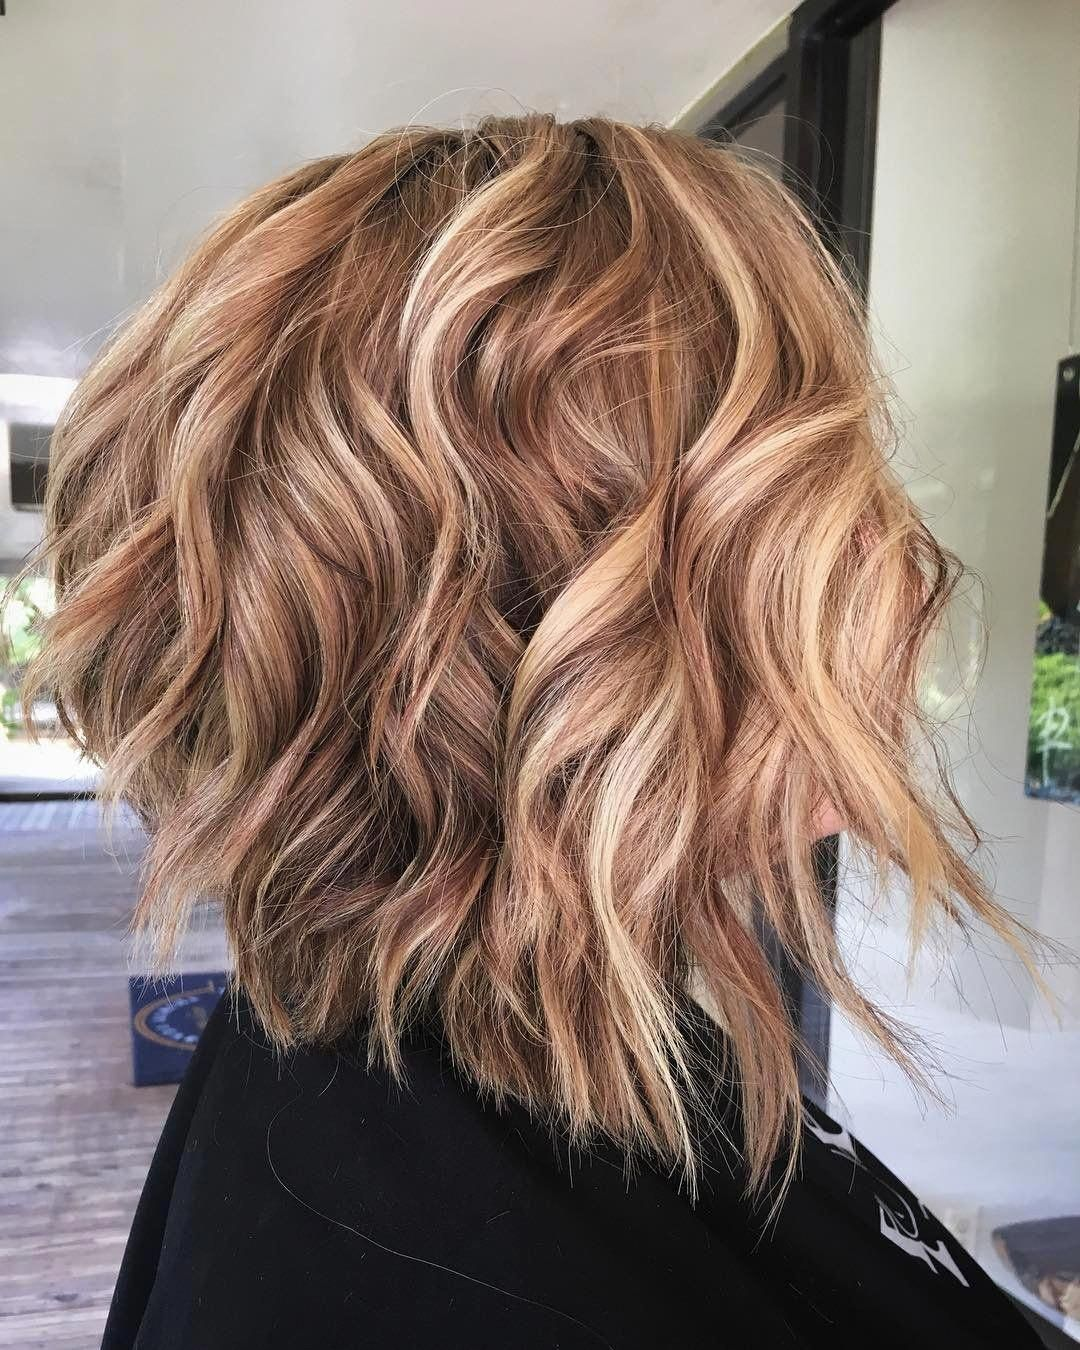 Top 11 Long Hairstyles For Oval Faces In 2019 Fall Hair Color